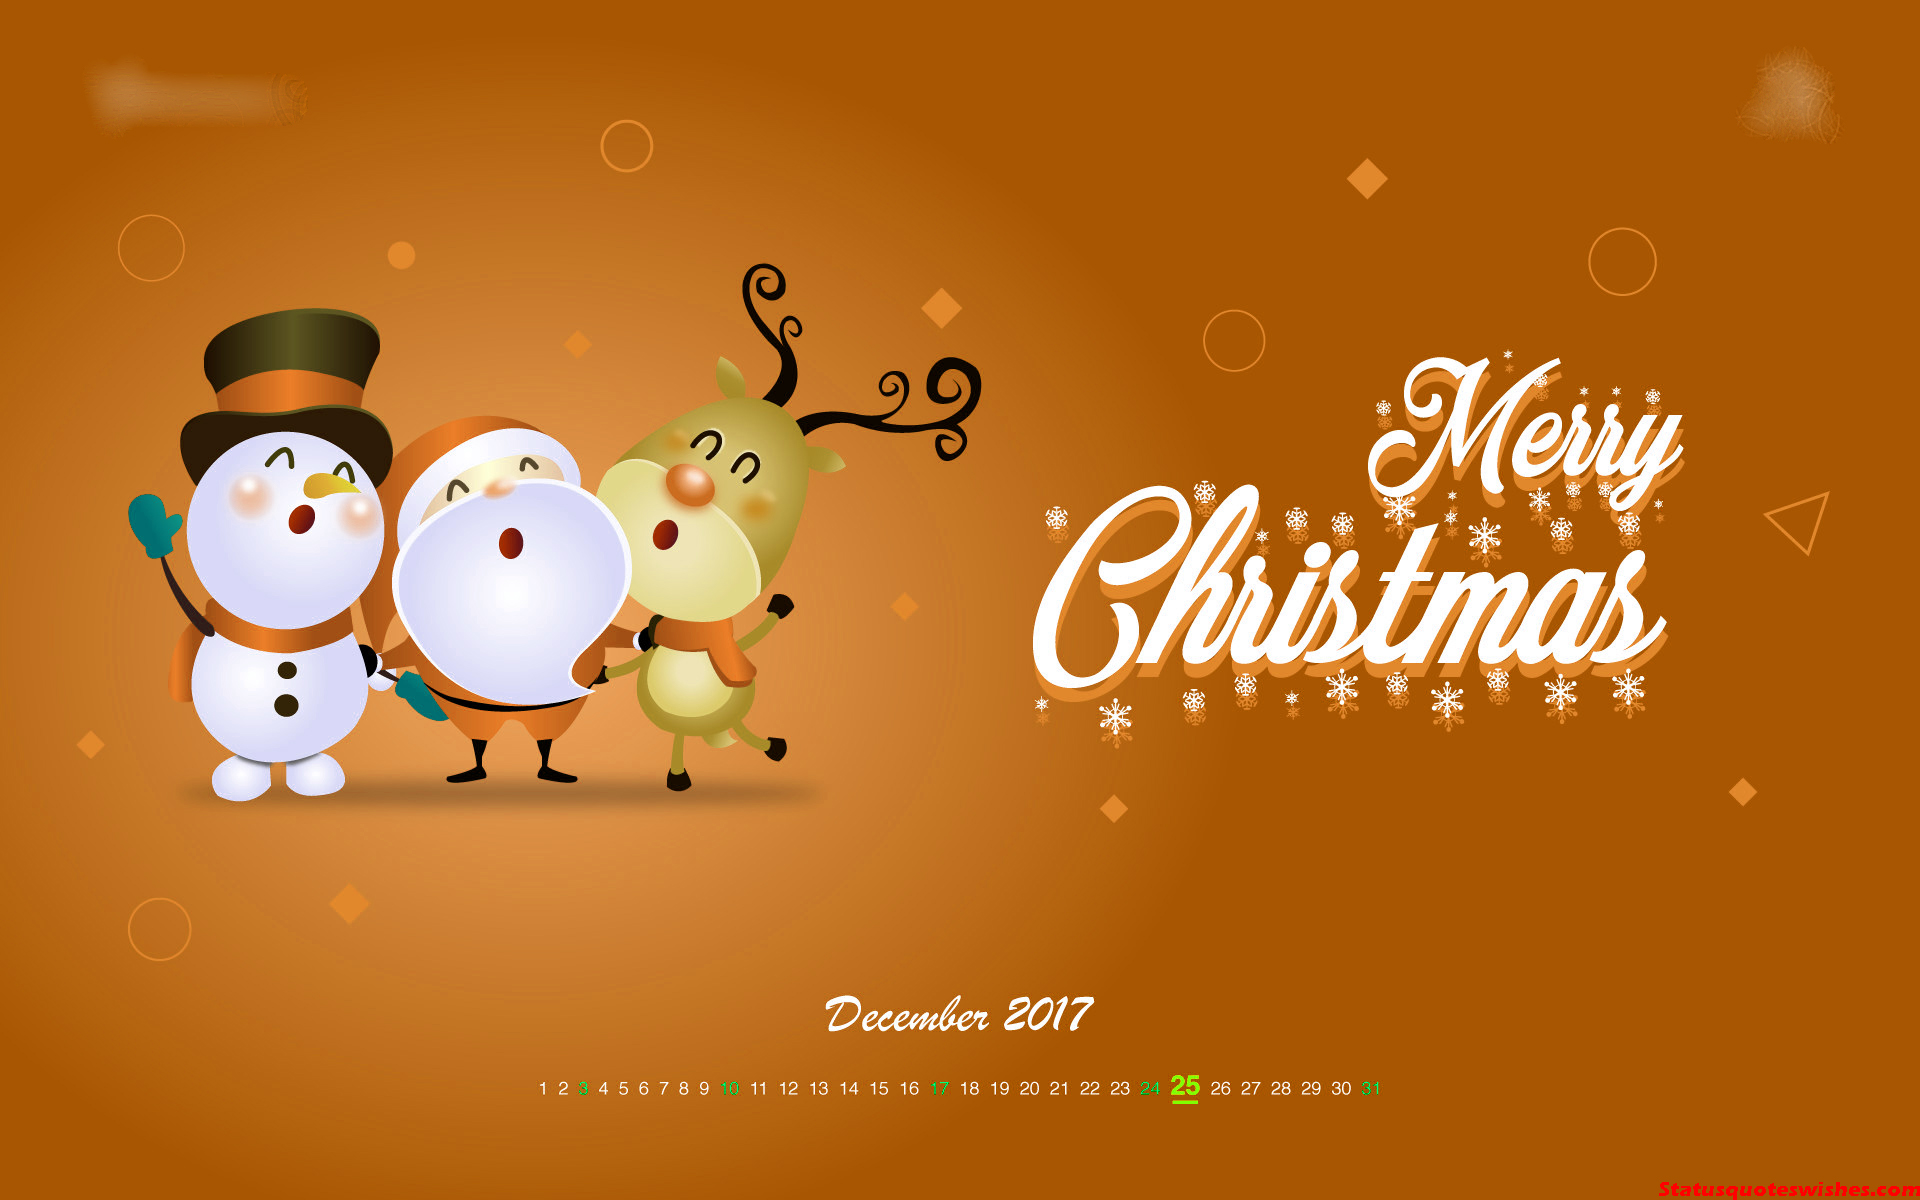 merry christmas wishes and greetings collections